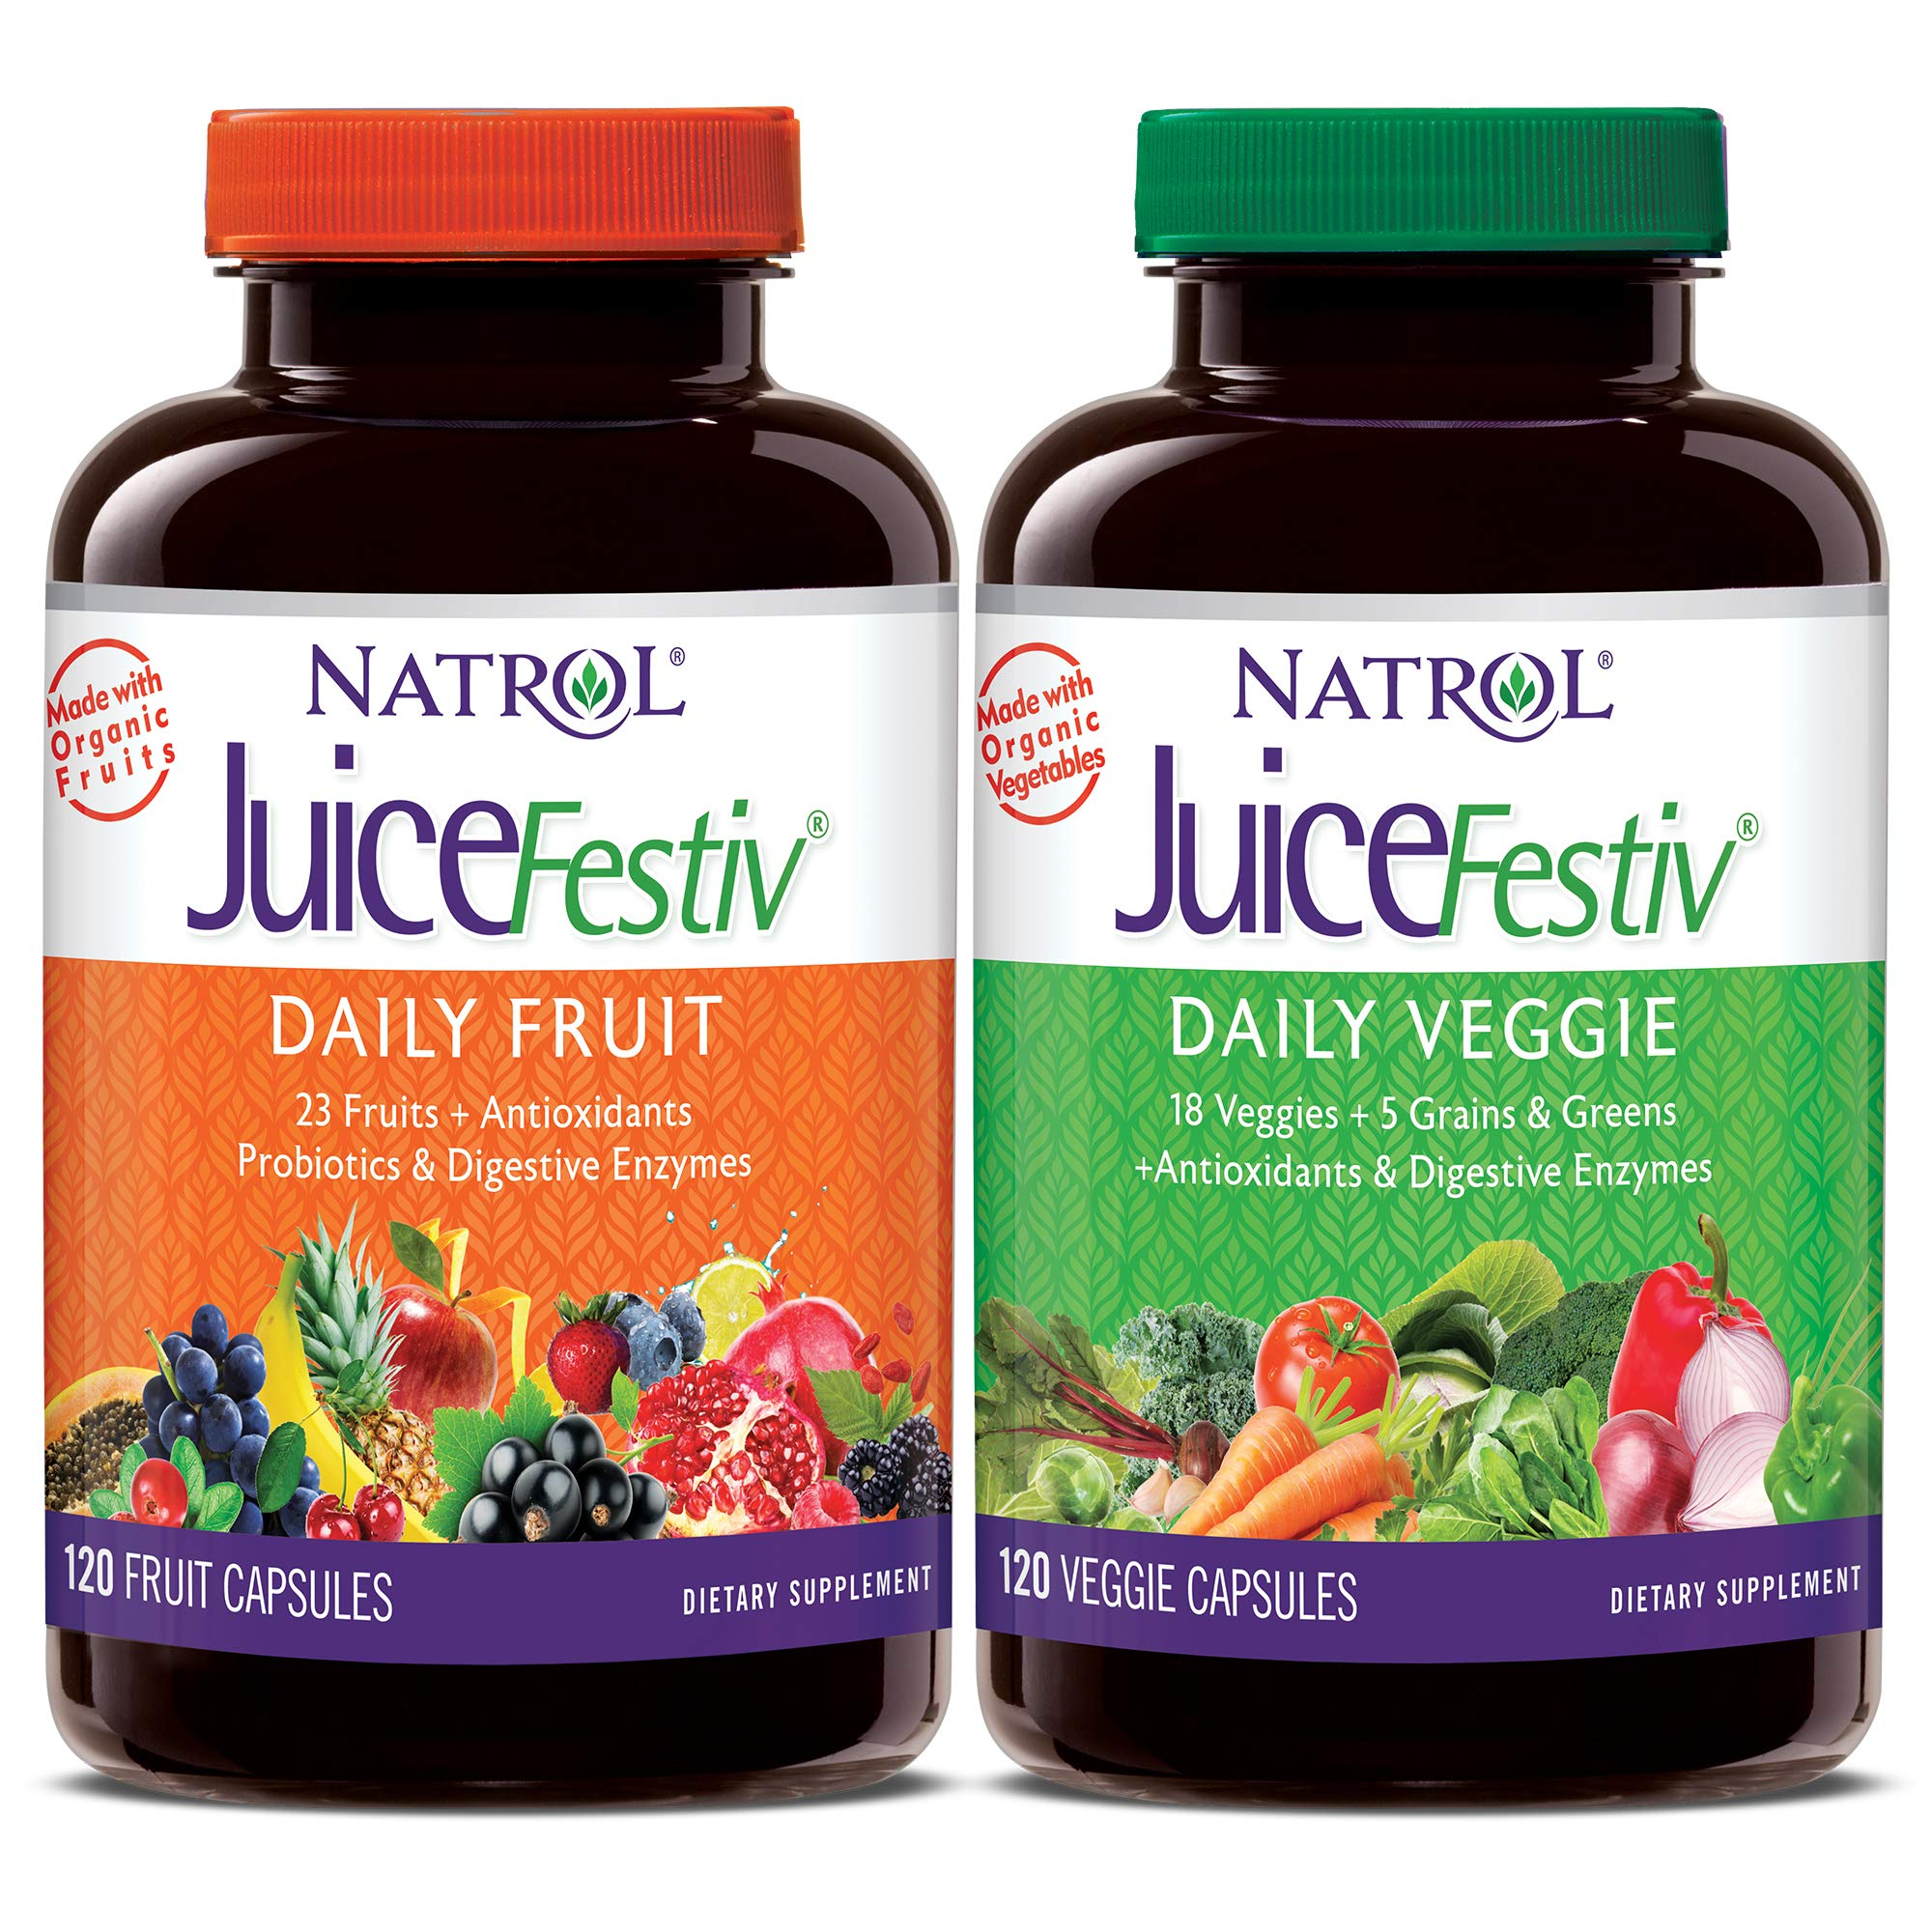 Natrol JuiceFestiv Daily Fruit & Veggie Capsules with Probiotics and Digestive Enzymes, 240 Count